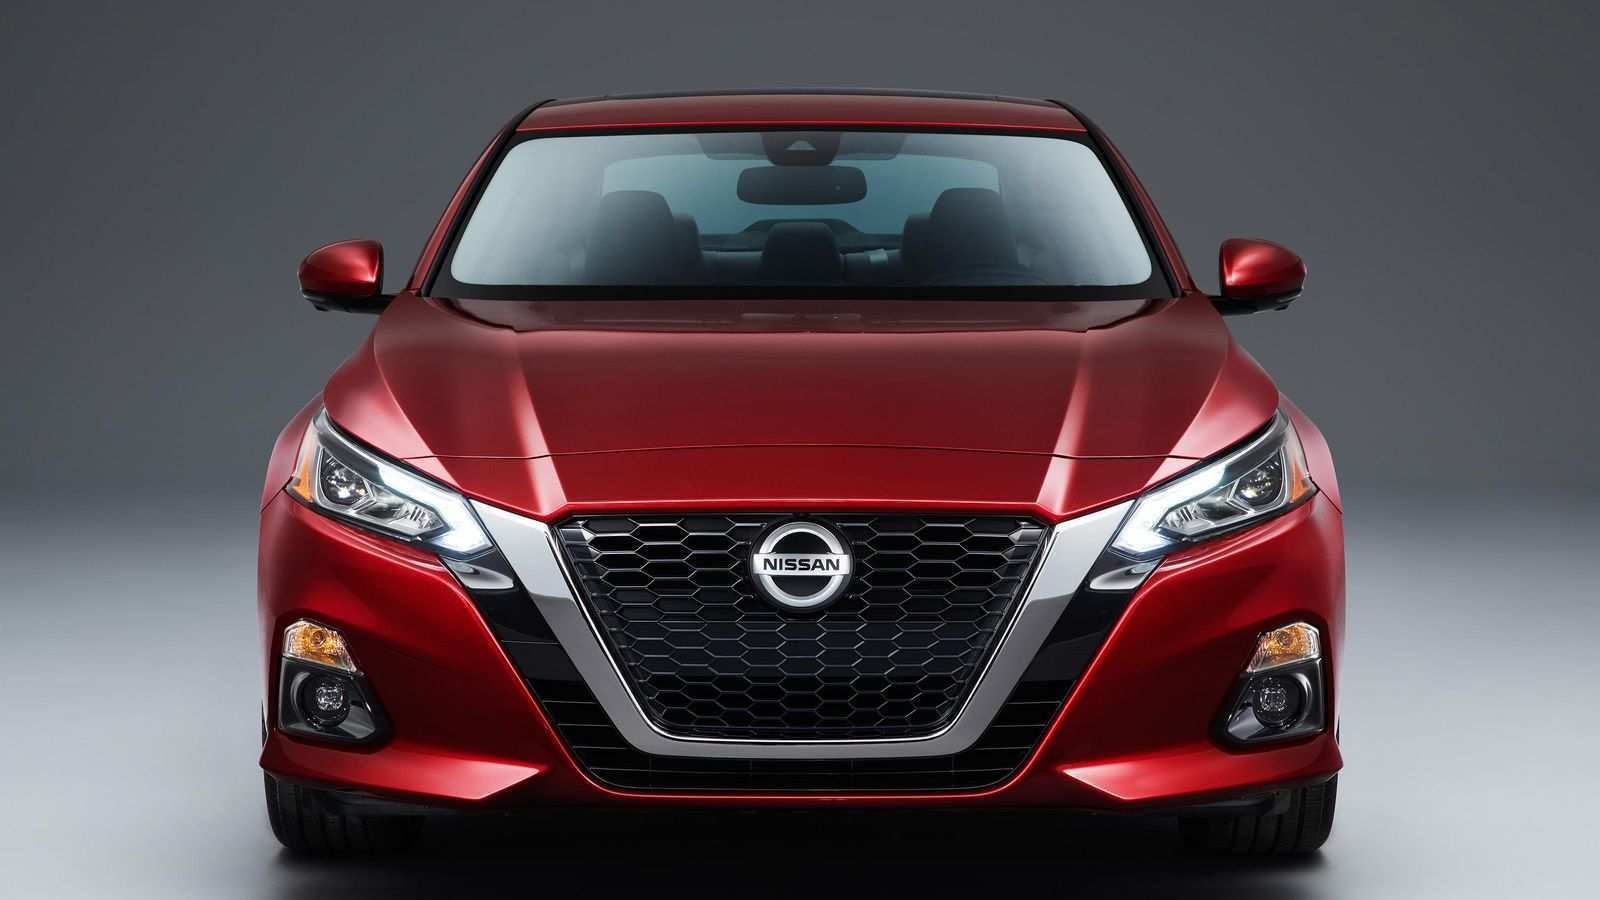 97 New 2019 Nissan Altima Engine Price And Review